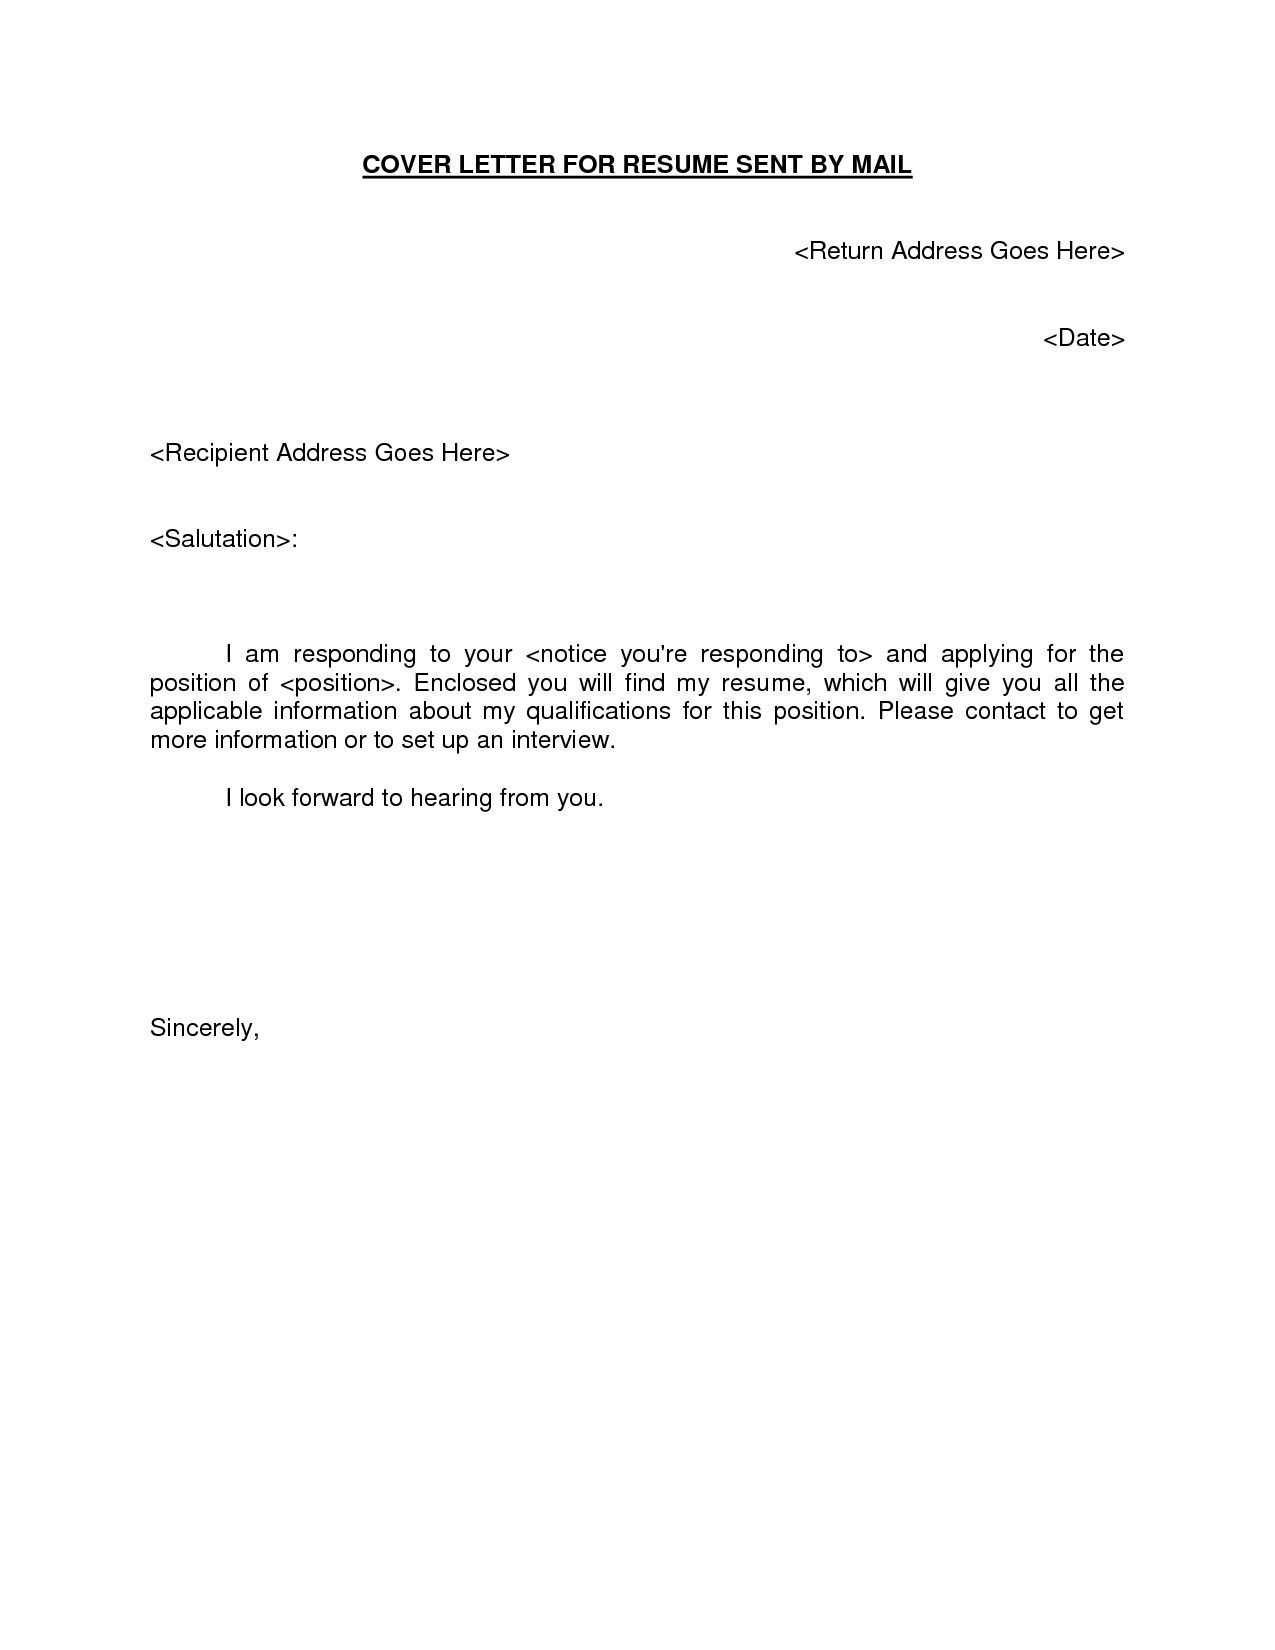 Unique Fax Cover Letters With Images Cover Letter For Resume